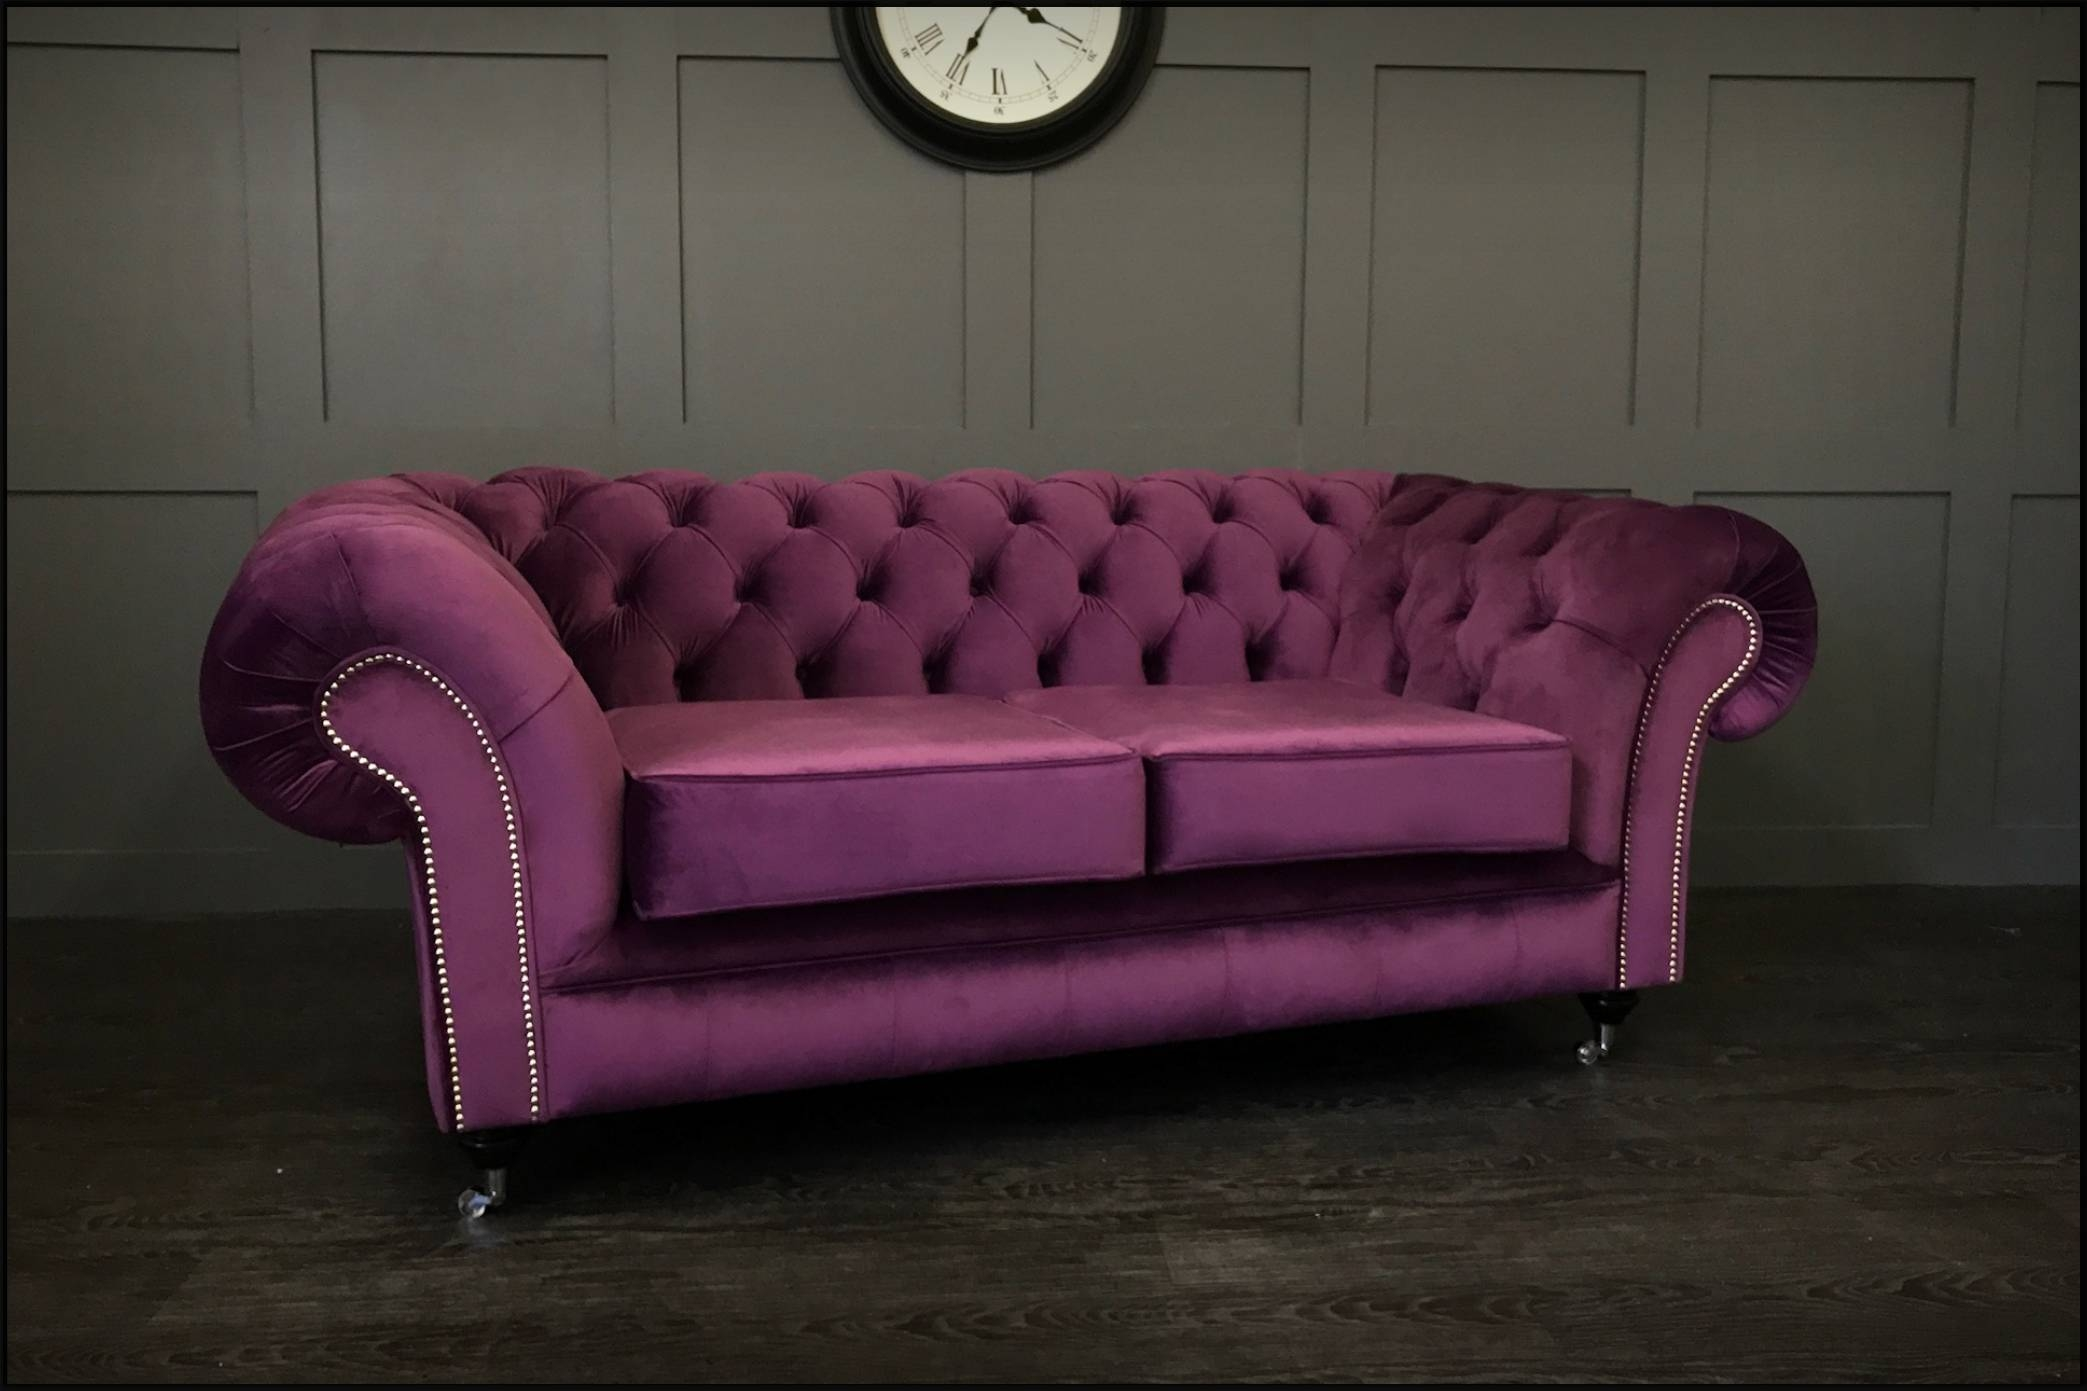 Timeless Chesterfield Sofas - Handmade Leather & Fabric with regard to Manchester Sofas (Image 27 of 30)